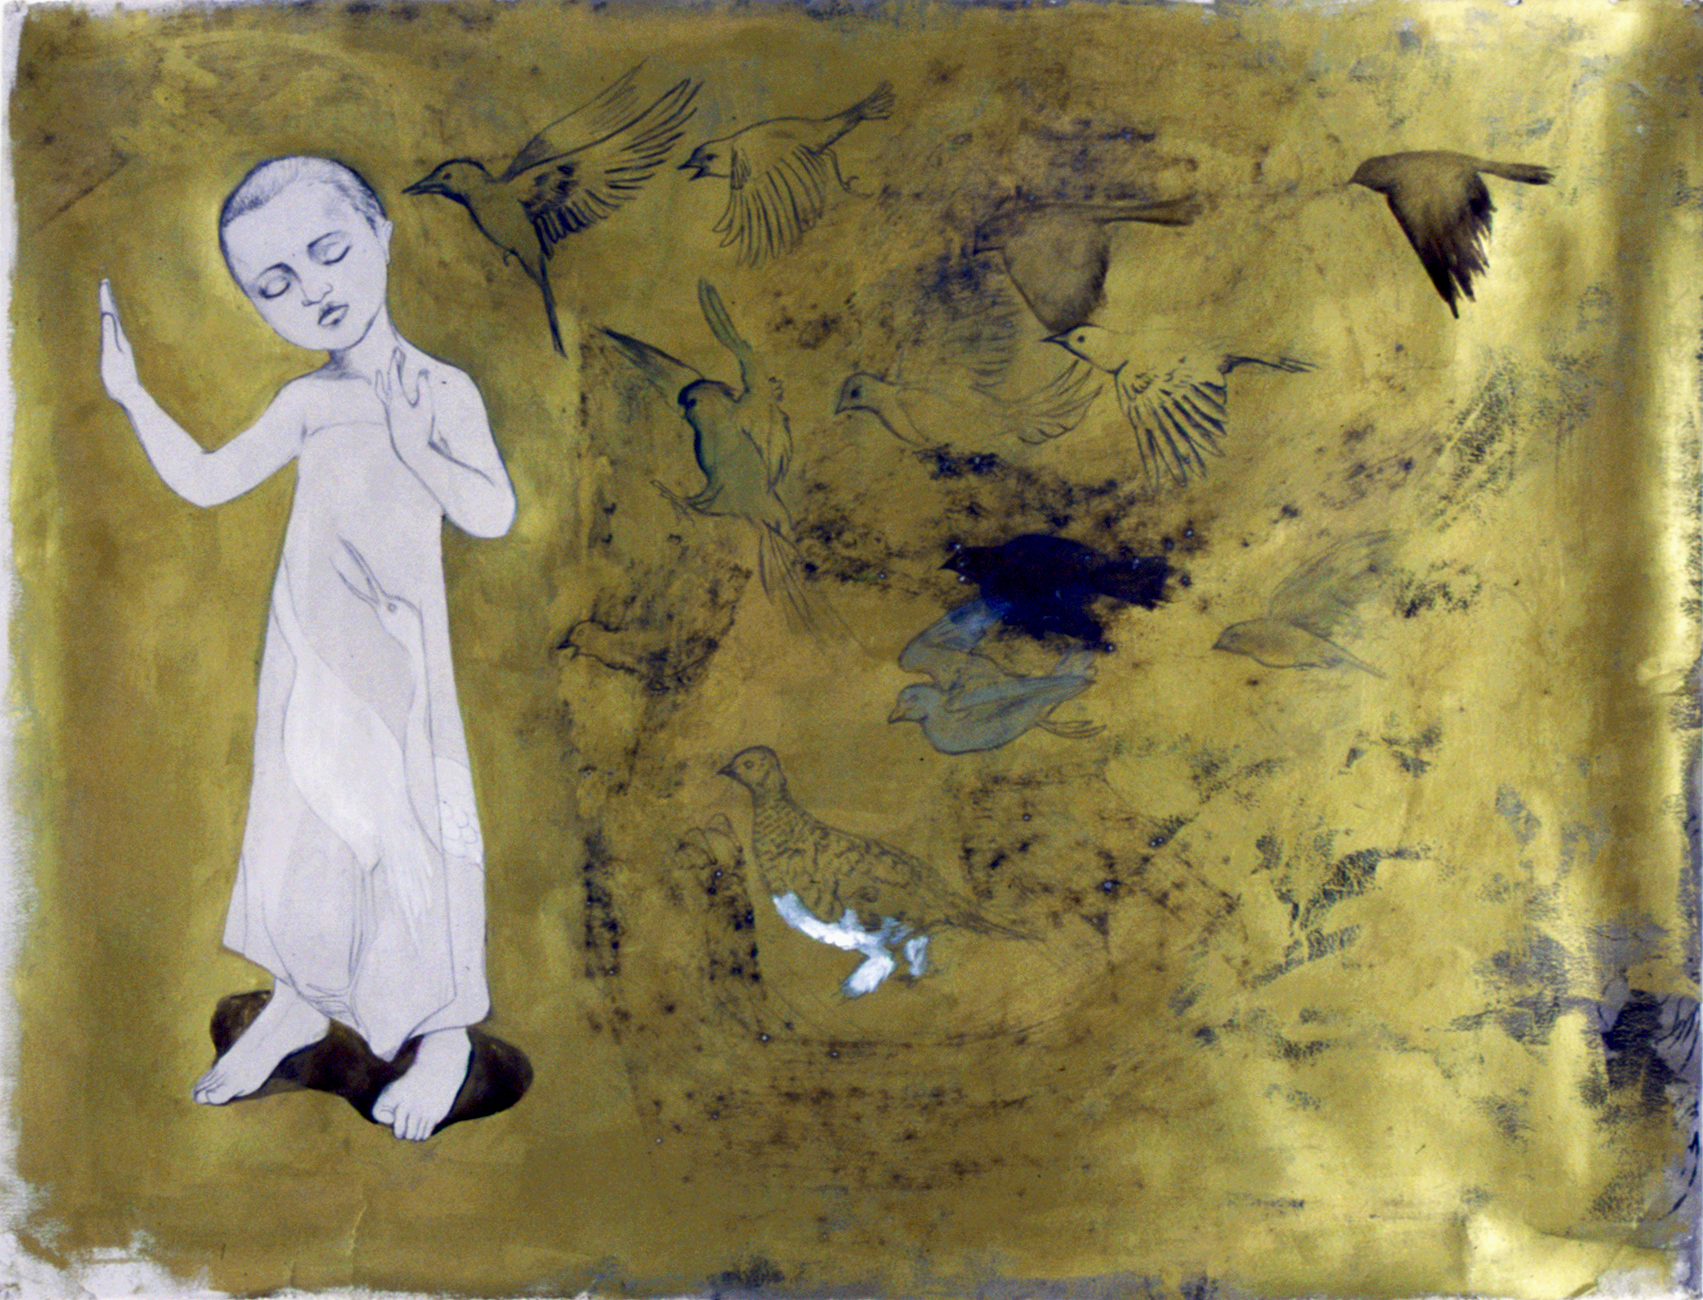 Ghostbirds , 2004 Graphite, ink, acrylic on gray paper 38 X 50 inches Private collection